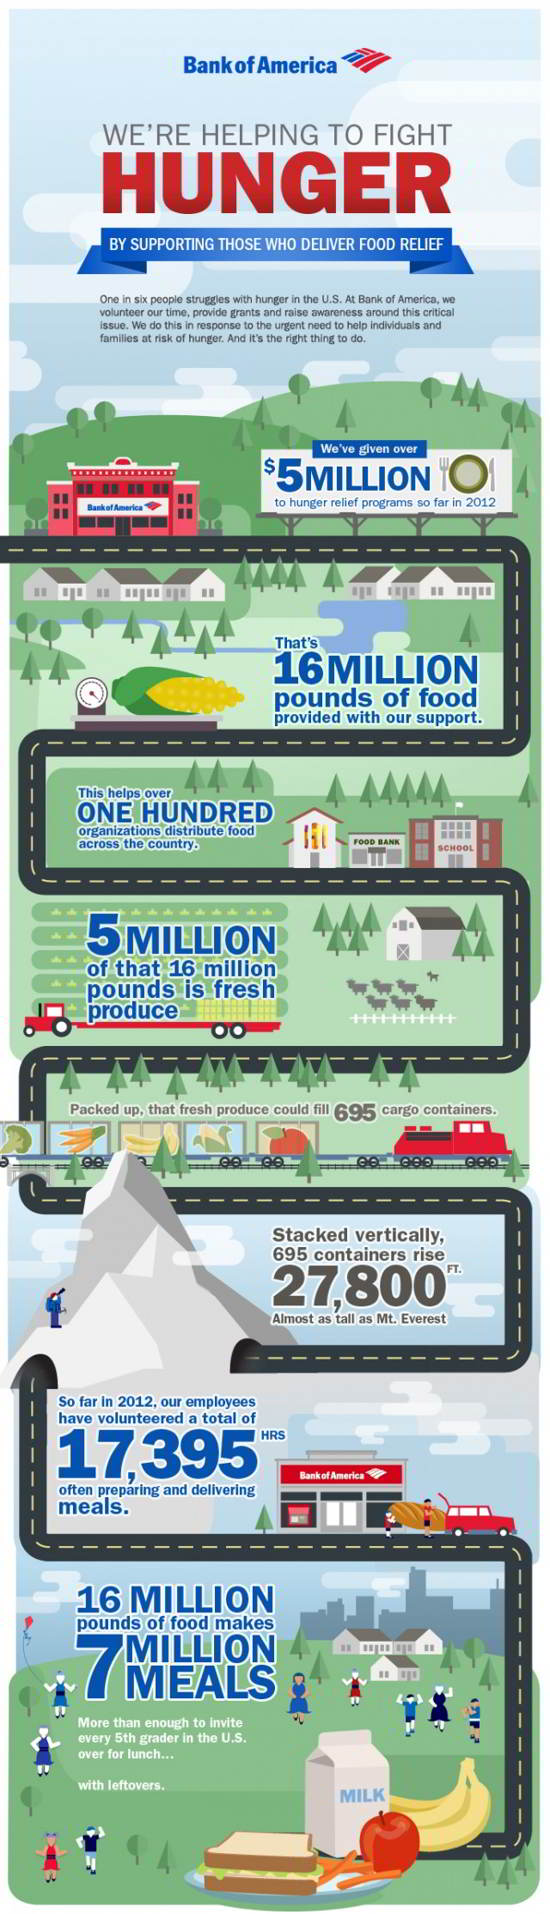 09 Hunger Relief Programs Infographic